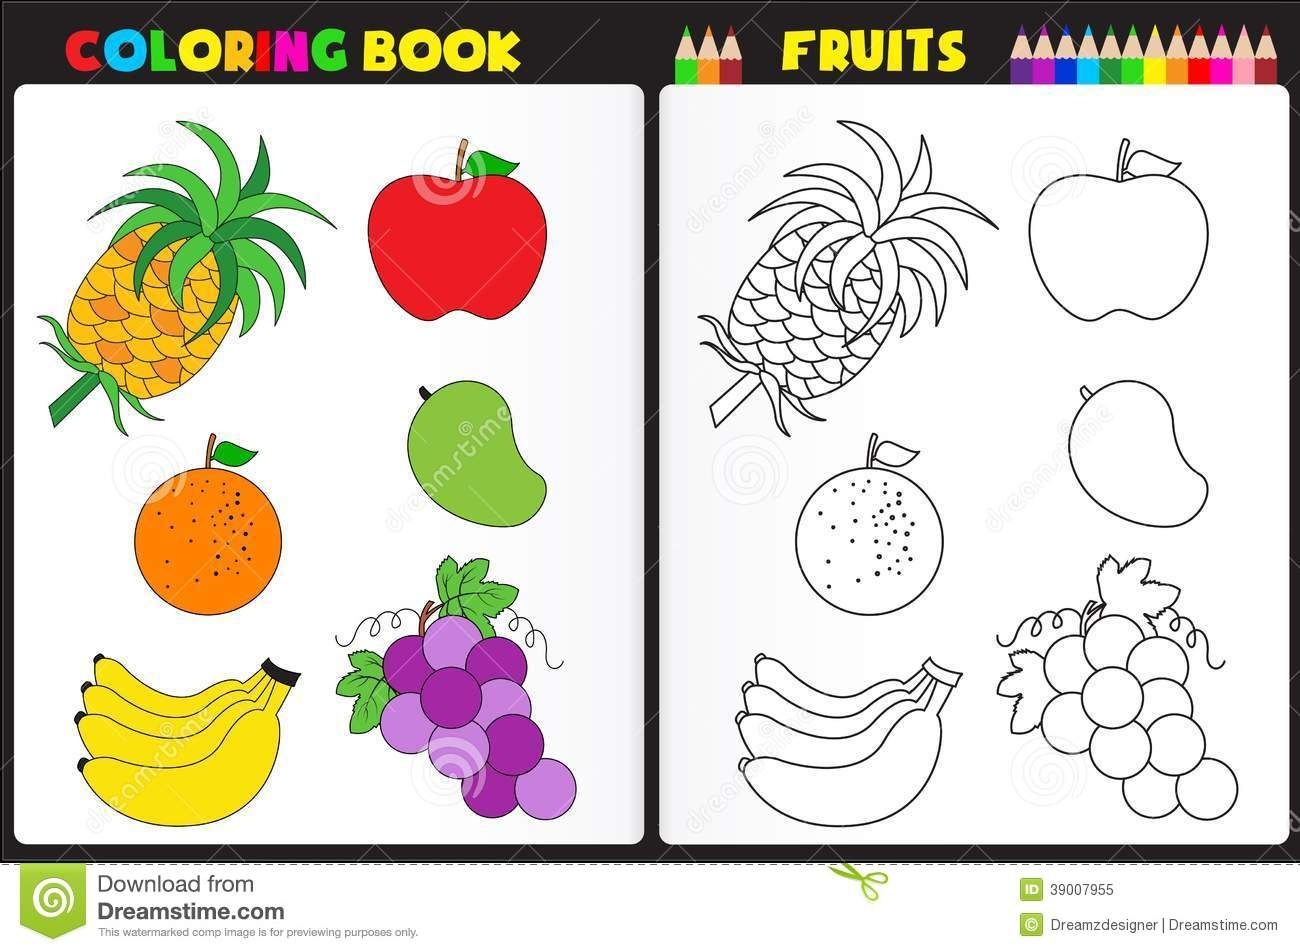 Coloring Book Page Fruits Nature Kids Colorful Sketches To Color 952